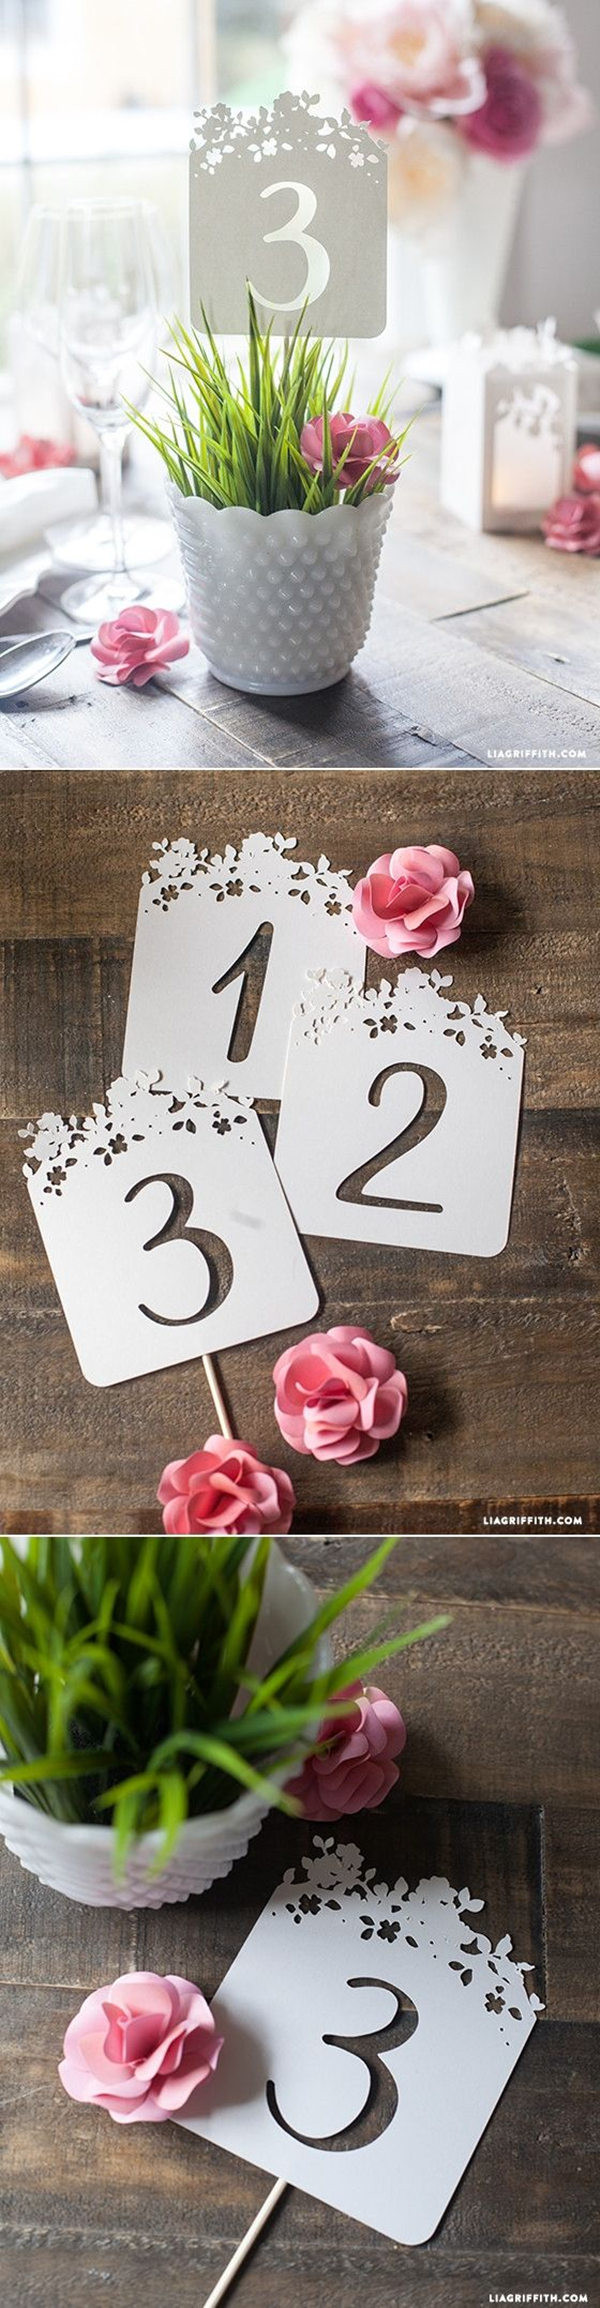 Best ideas about DIY Wedding Table Numbers . Save or Pin 20 Creative DIY Wedding Ideas For 2016 Spring Now.